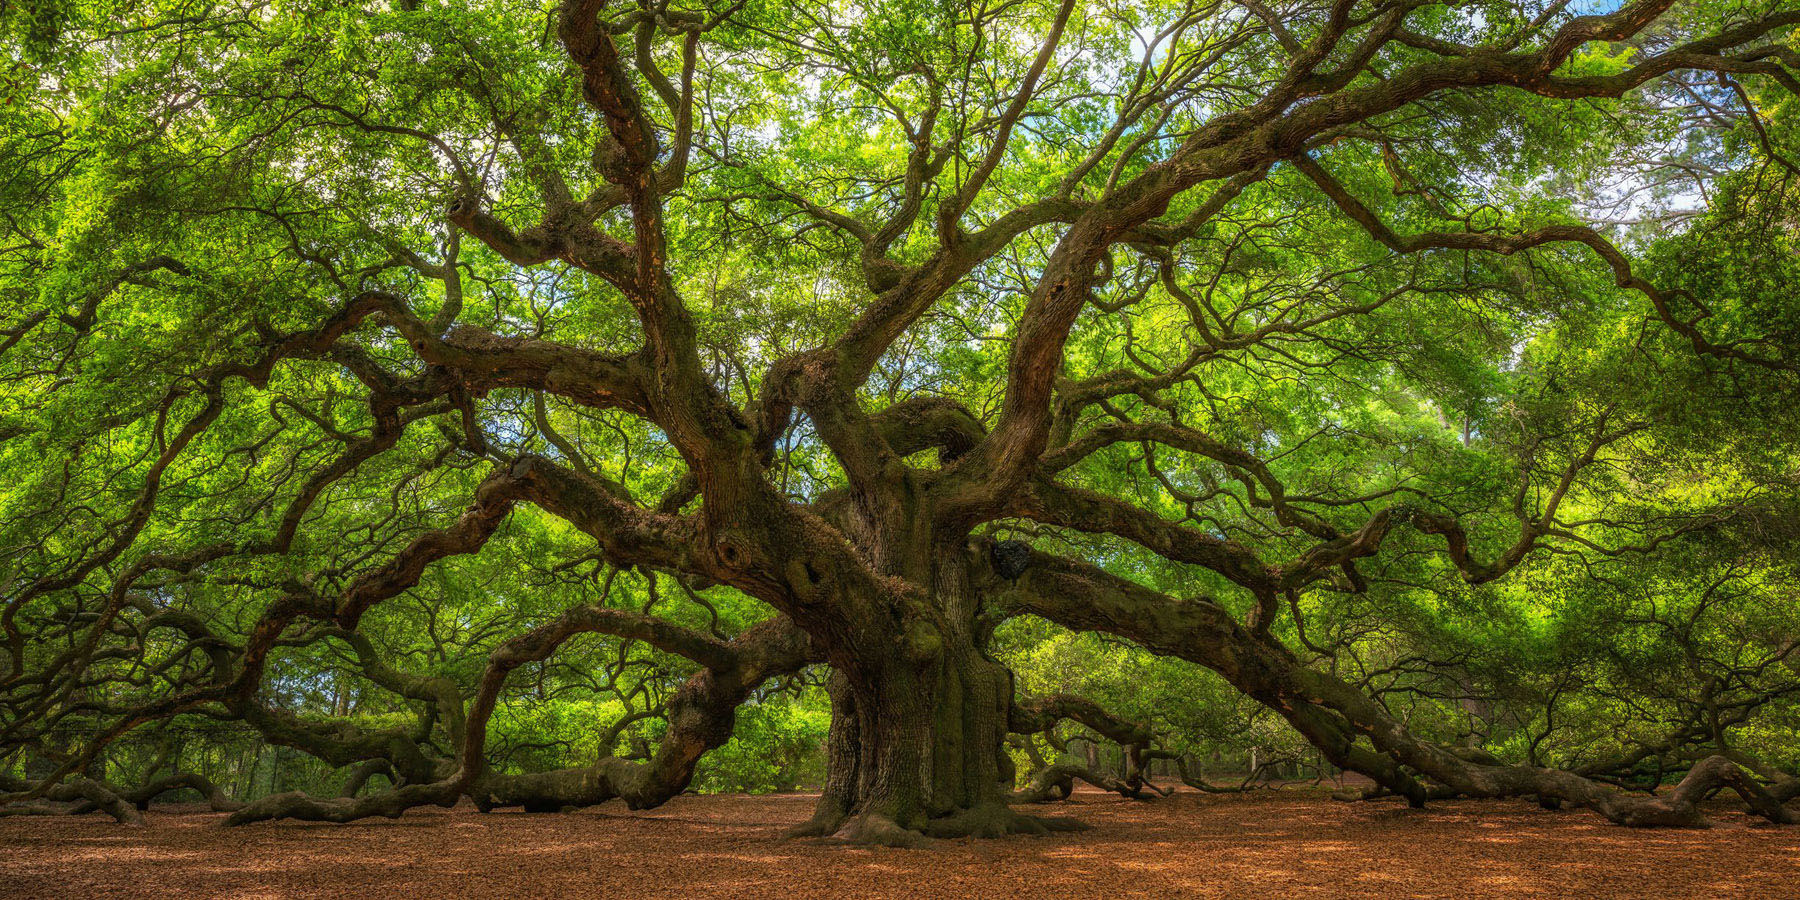 The historic Angel Oak Tree near Charleston, South Carolina